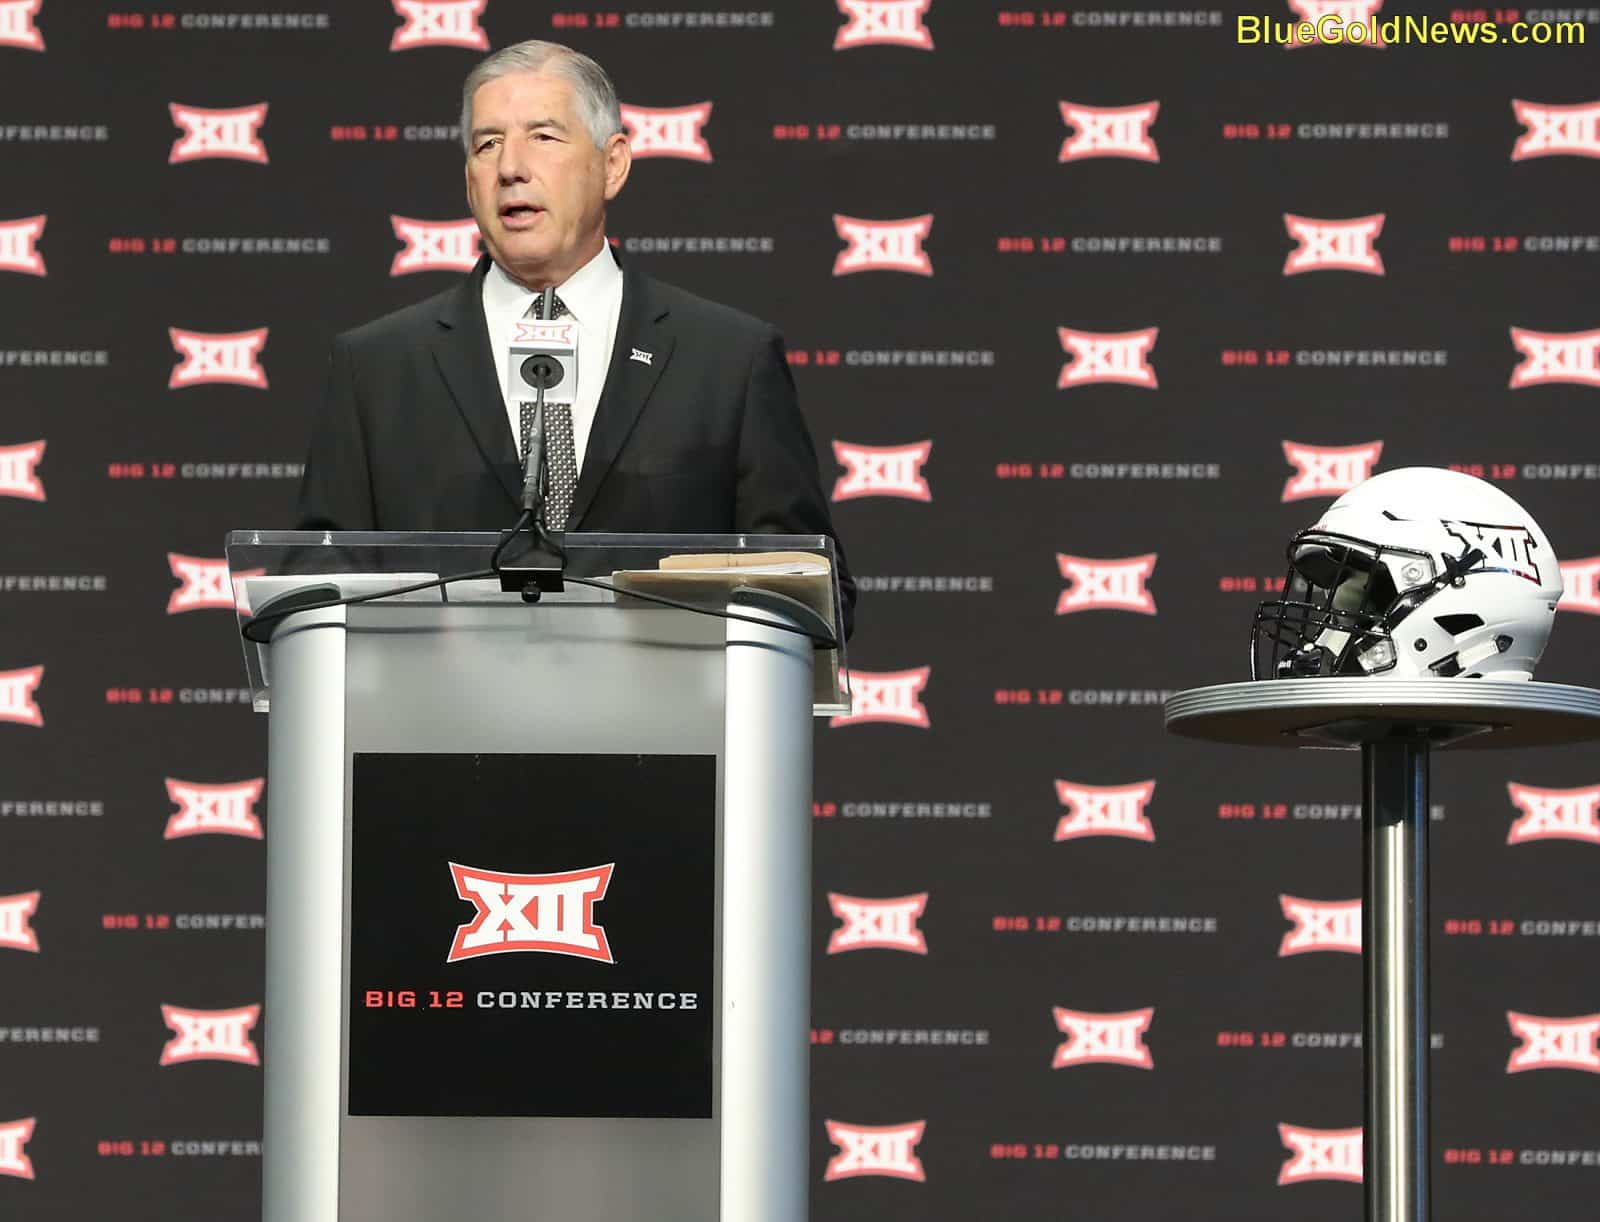 Big 12 OK with 'Horns Down' in moderation